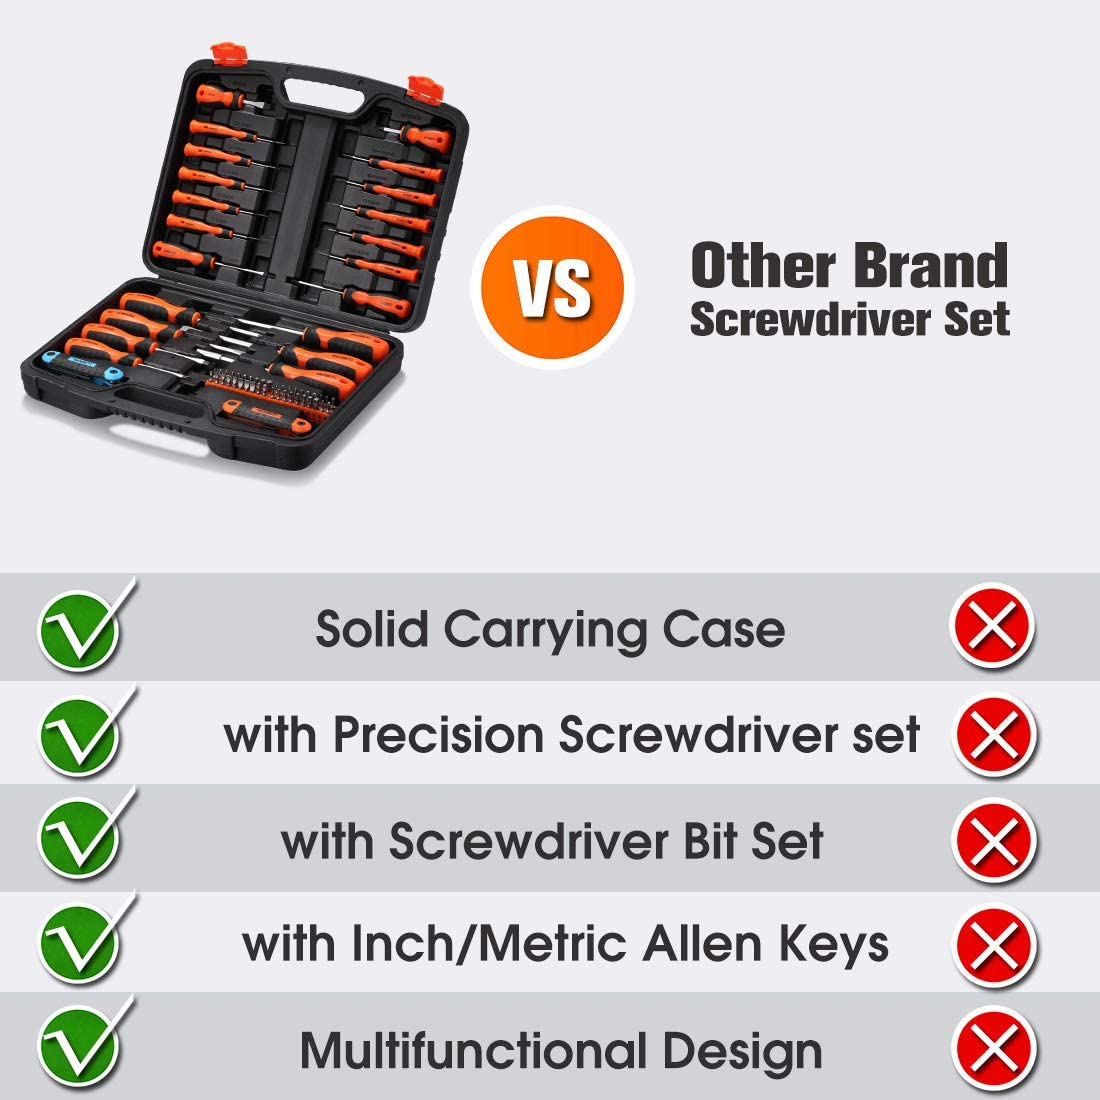 REXBETI Magnetic Screwdriver Set, 63 in 1 Multifunctional Repair Tool Kit with Slotted Phillips Screwdrivers, Precision Screwdrivers, Inch Metric Folding Allen Wrench Set and Screwdriver Bits: Home Improvement